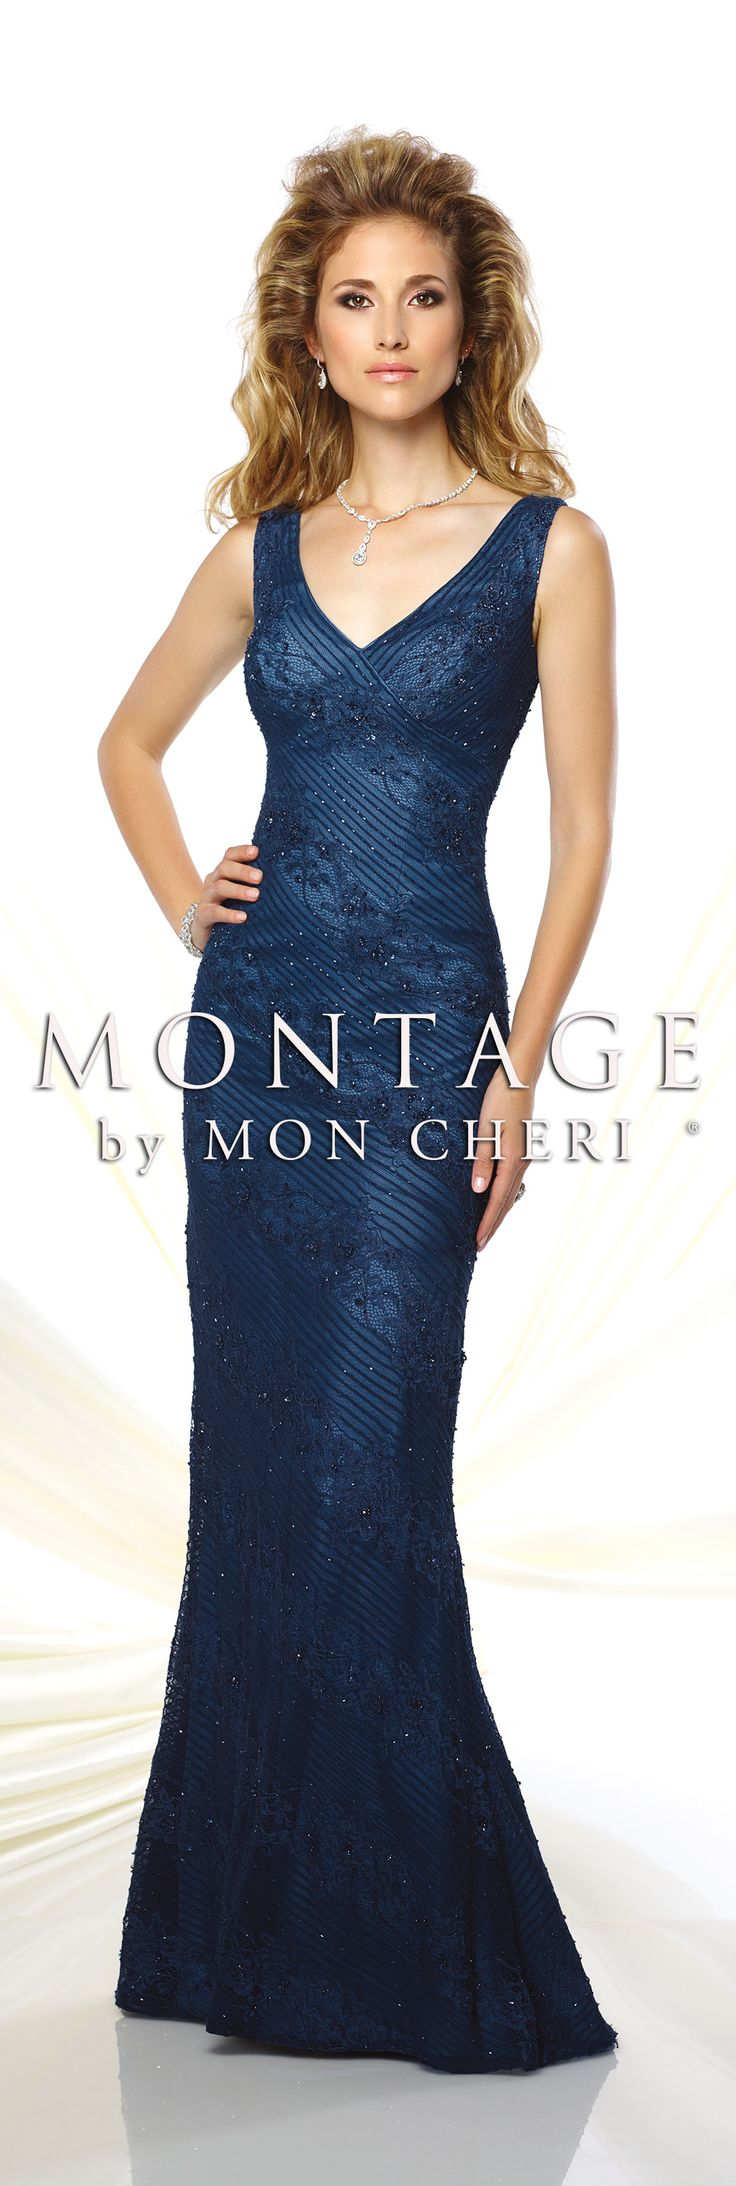 Montage by Mon Cheri Spring 2016 - Style No. 116931 #eveninggowns